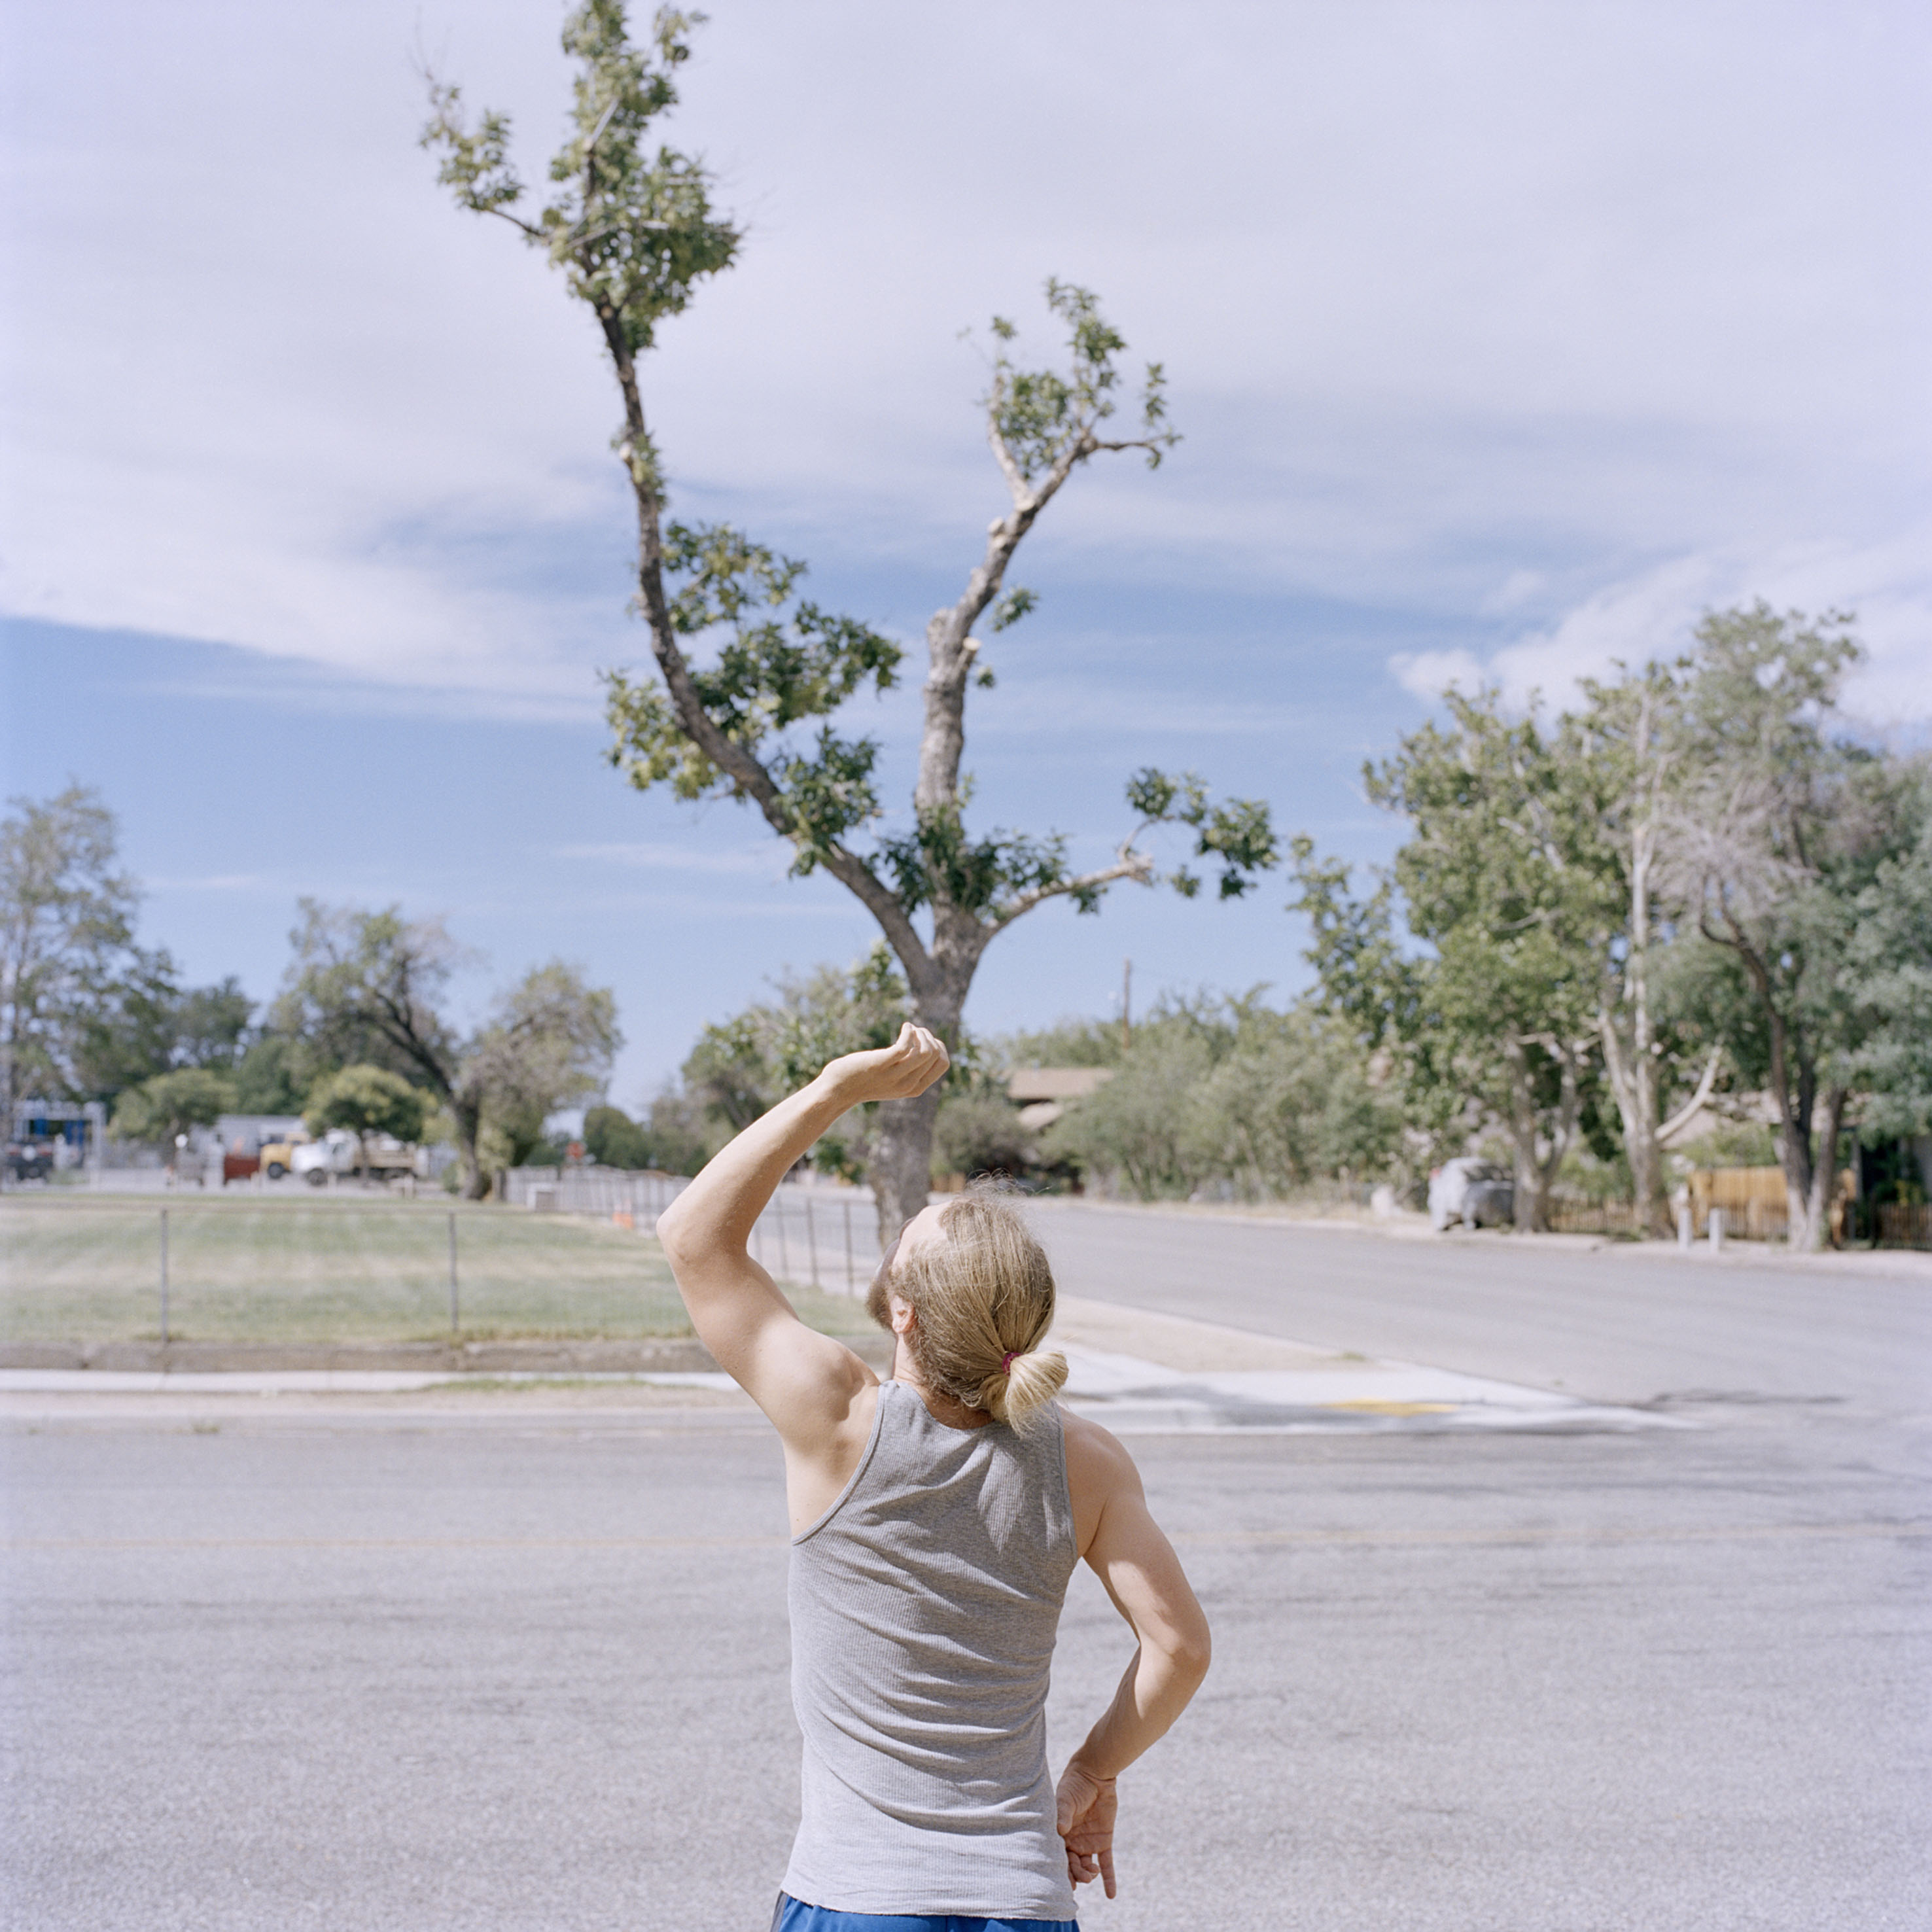 Brian, Independence, Owens Valley, Inyo County, California, May